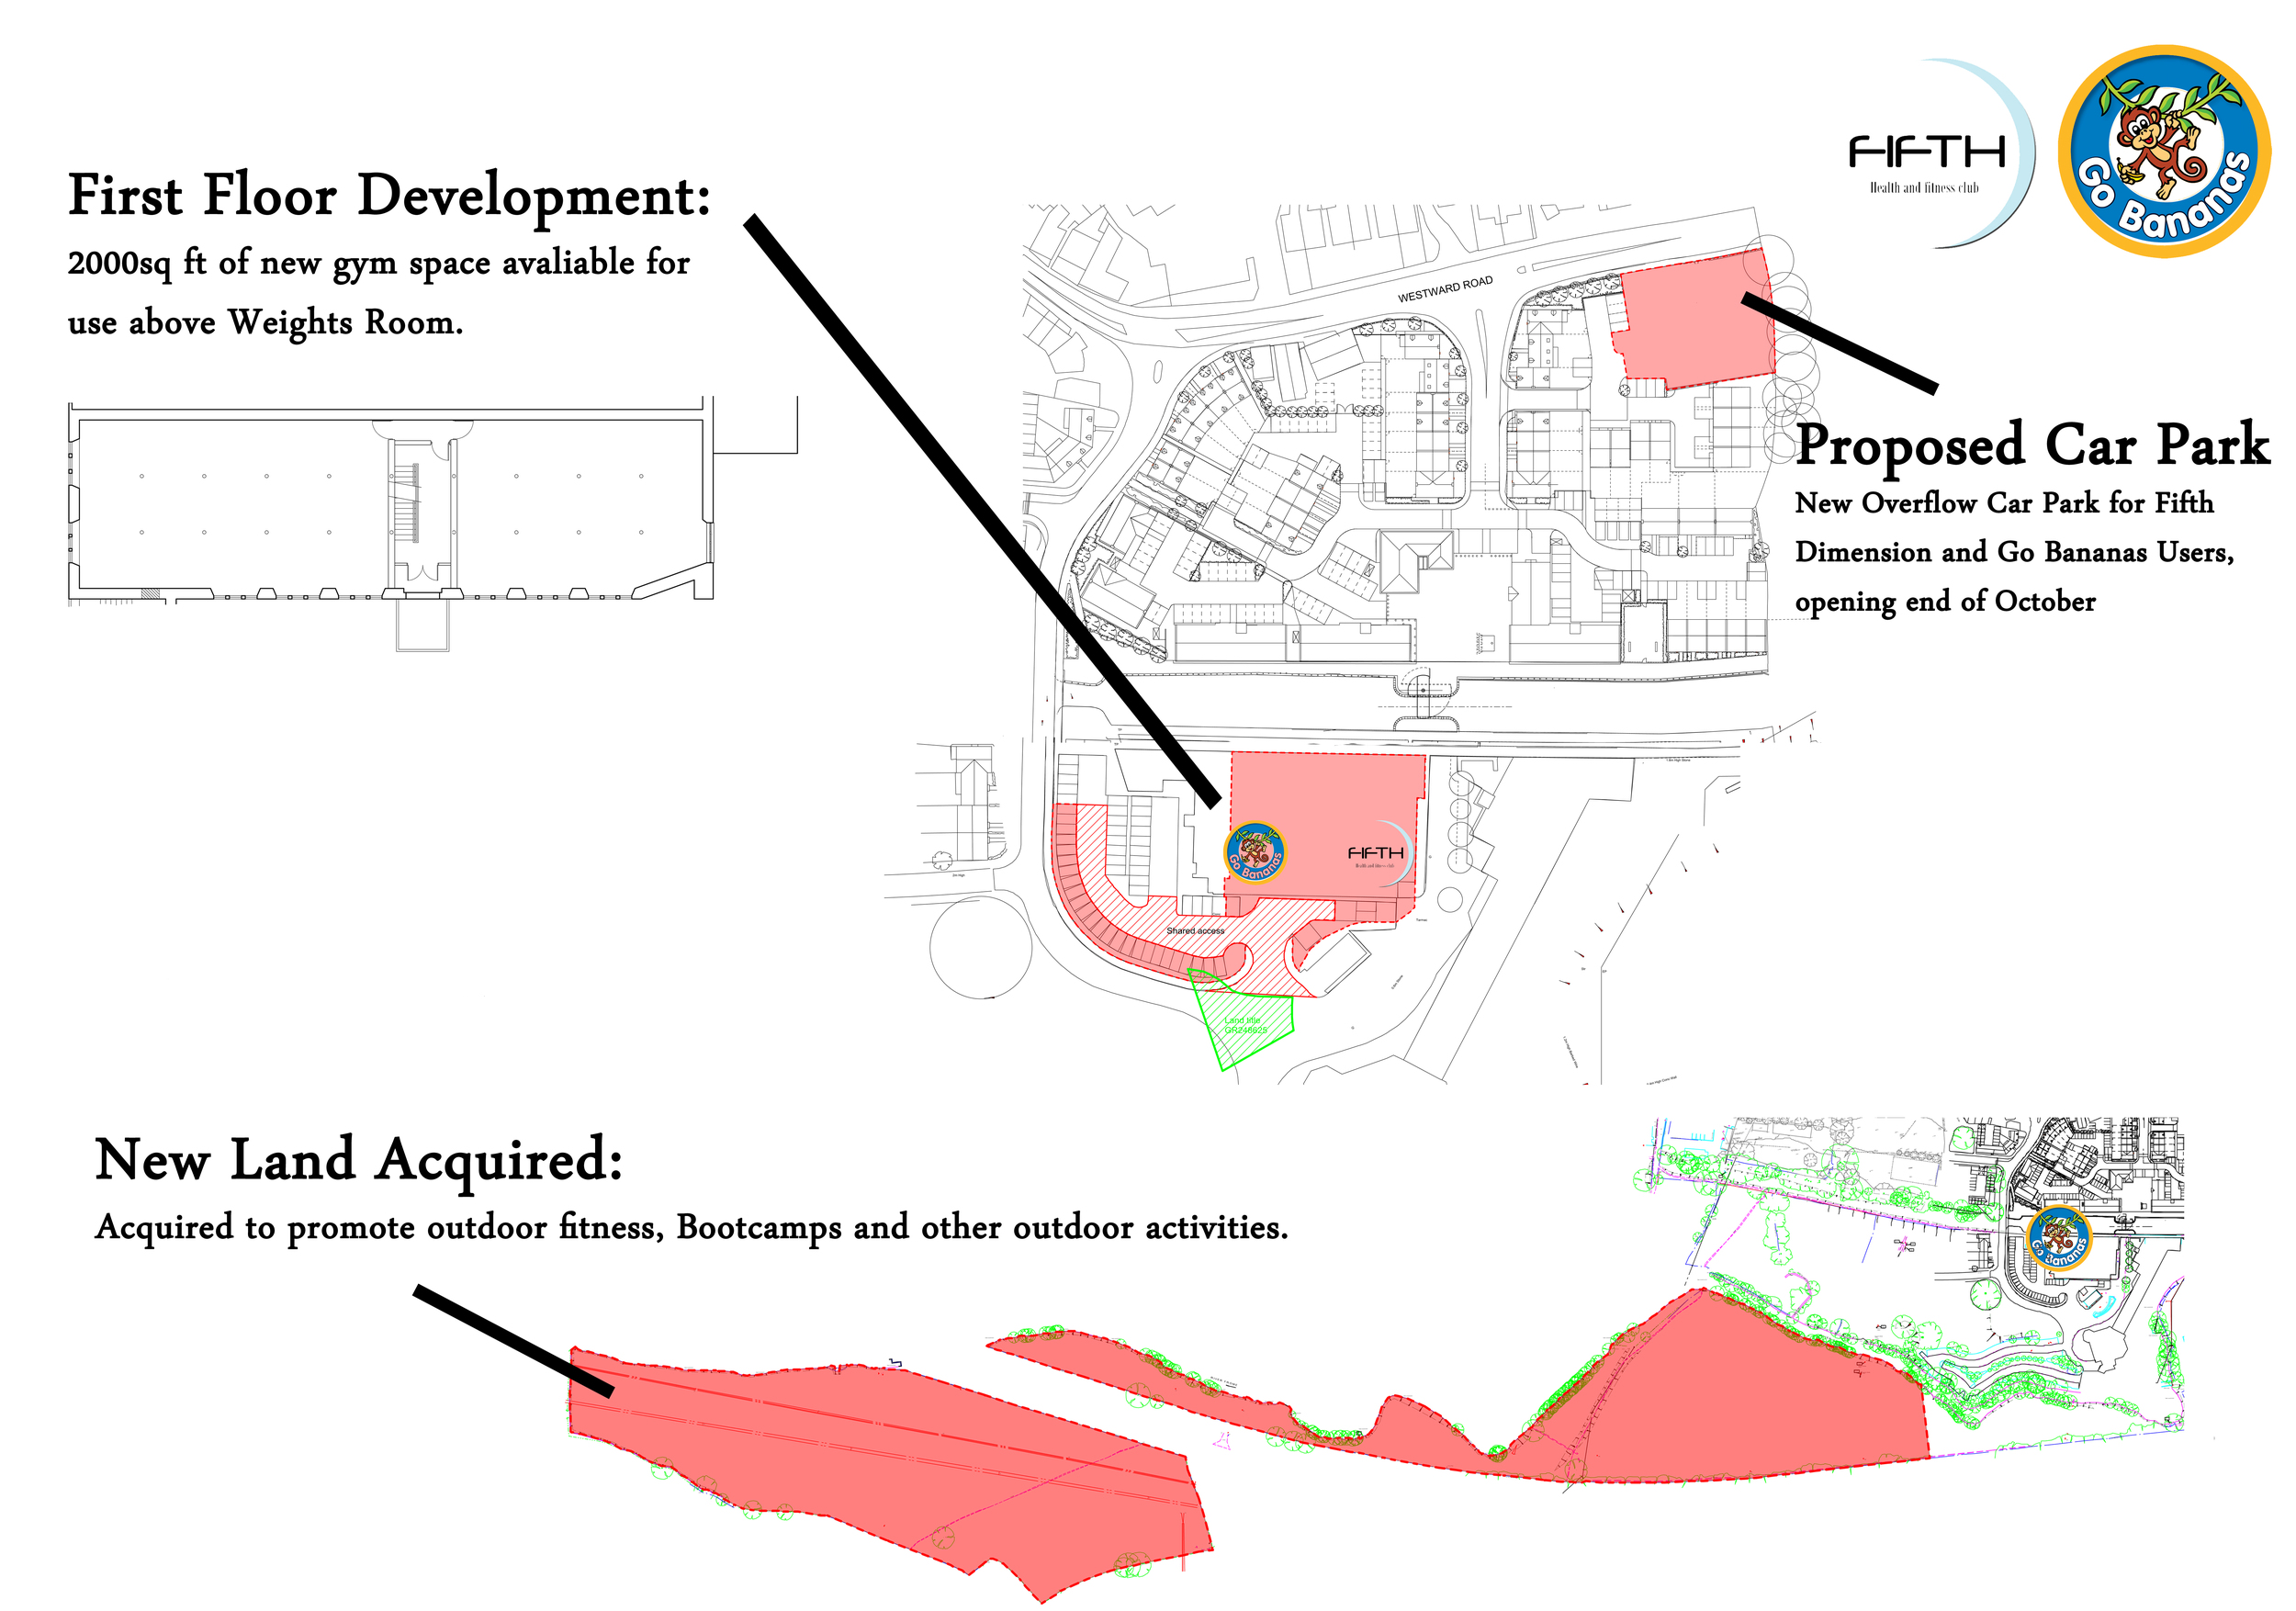 The above image identifies the newly acquired land for TFD, including provision for 40 new car parking spaces: 25 acres of land acquired opposite the current Car Park. Plus the development of 2000 sq ft of new indoor space,